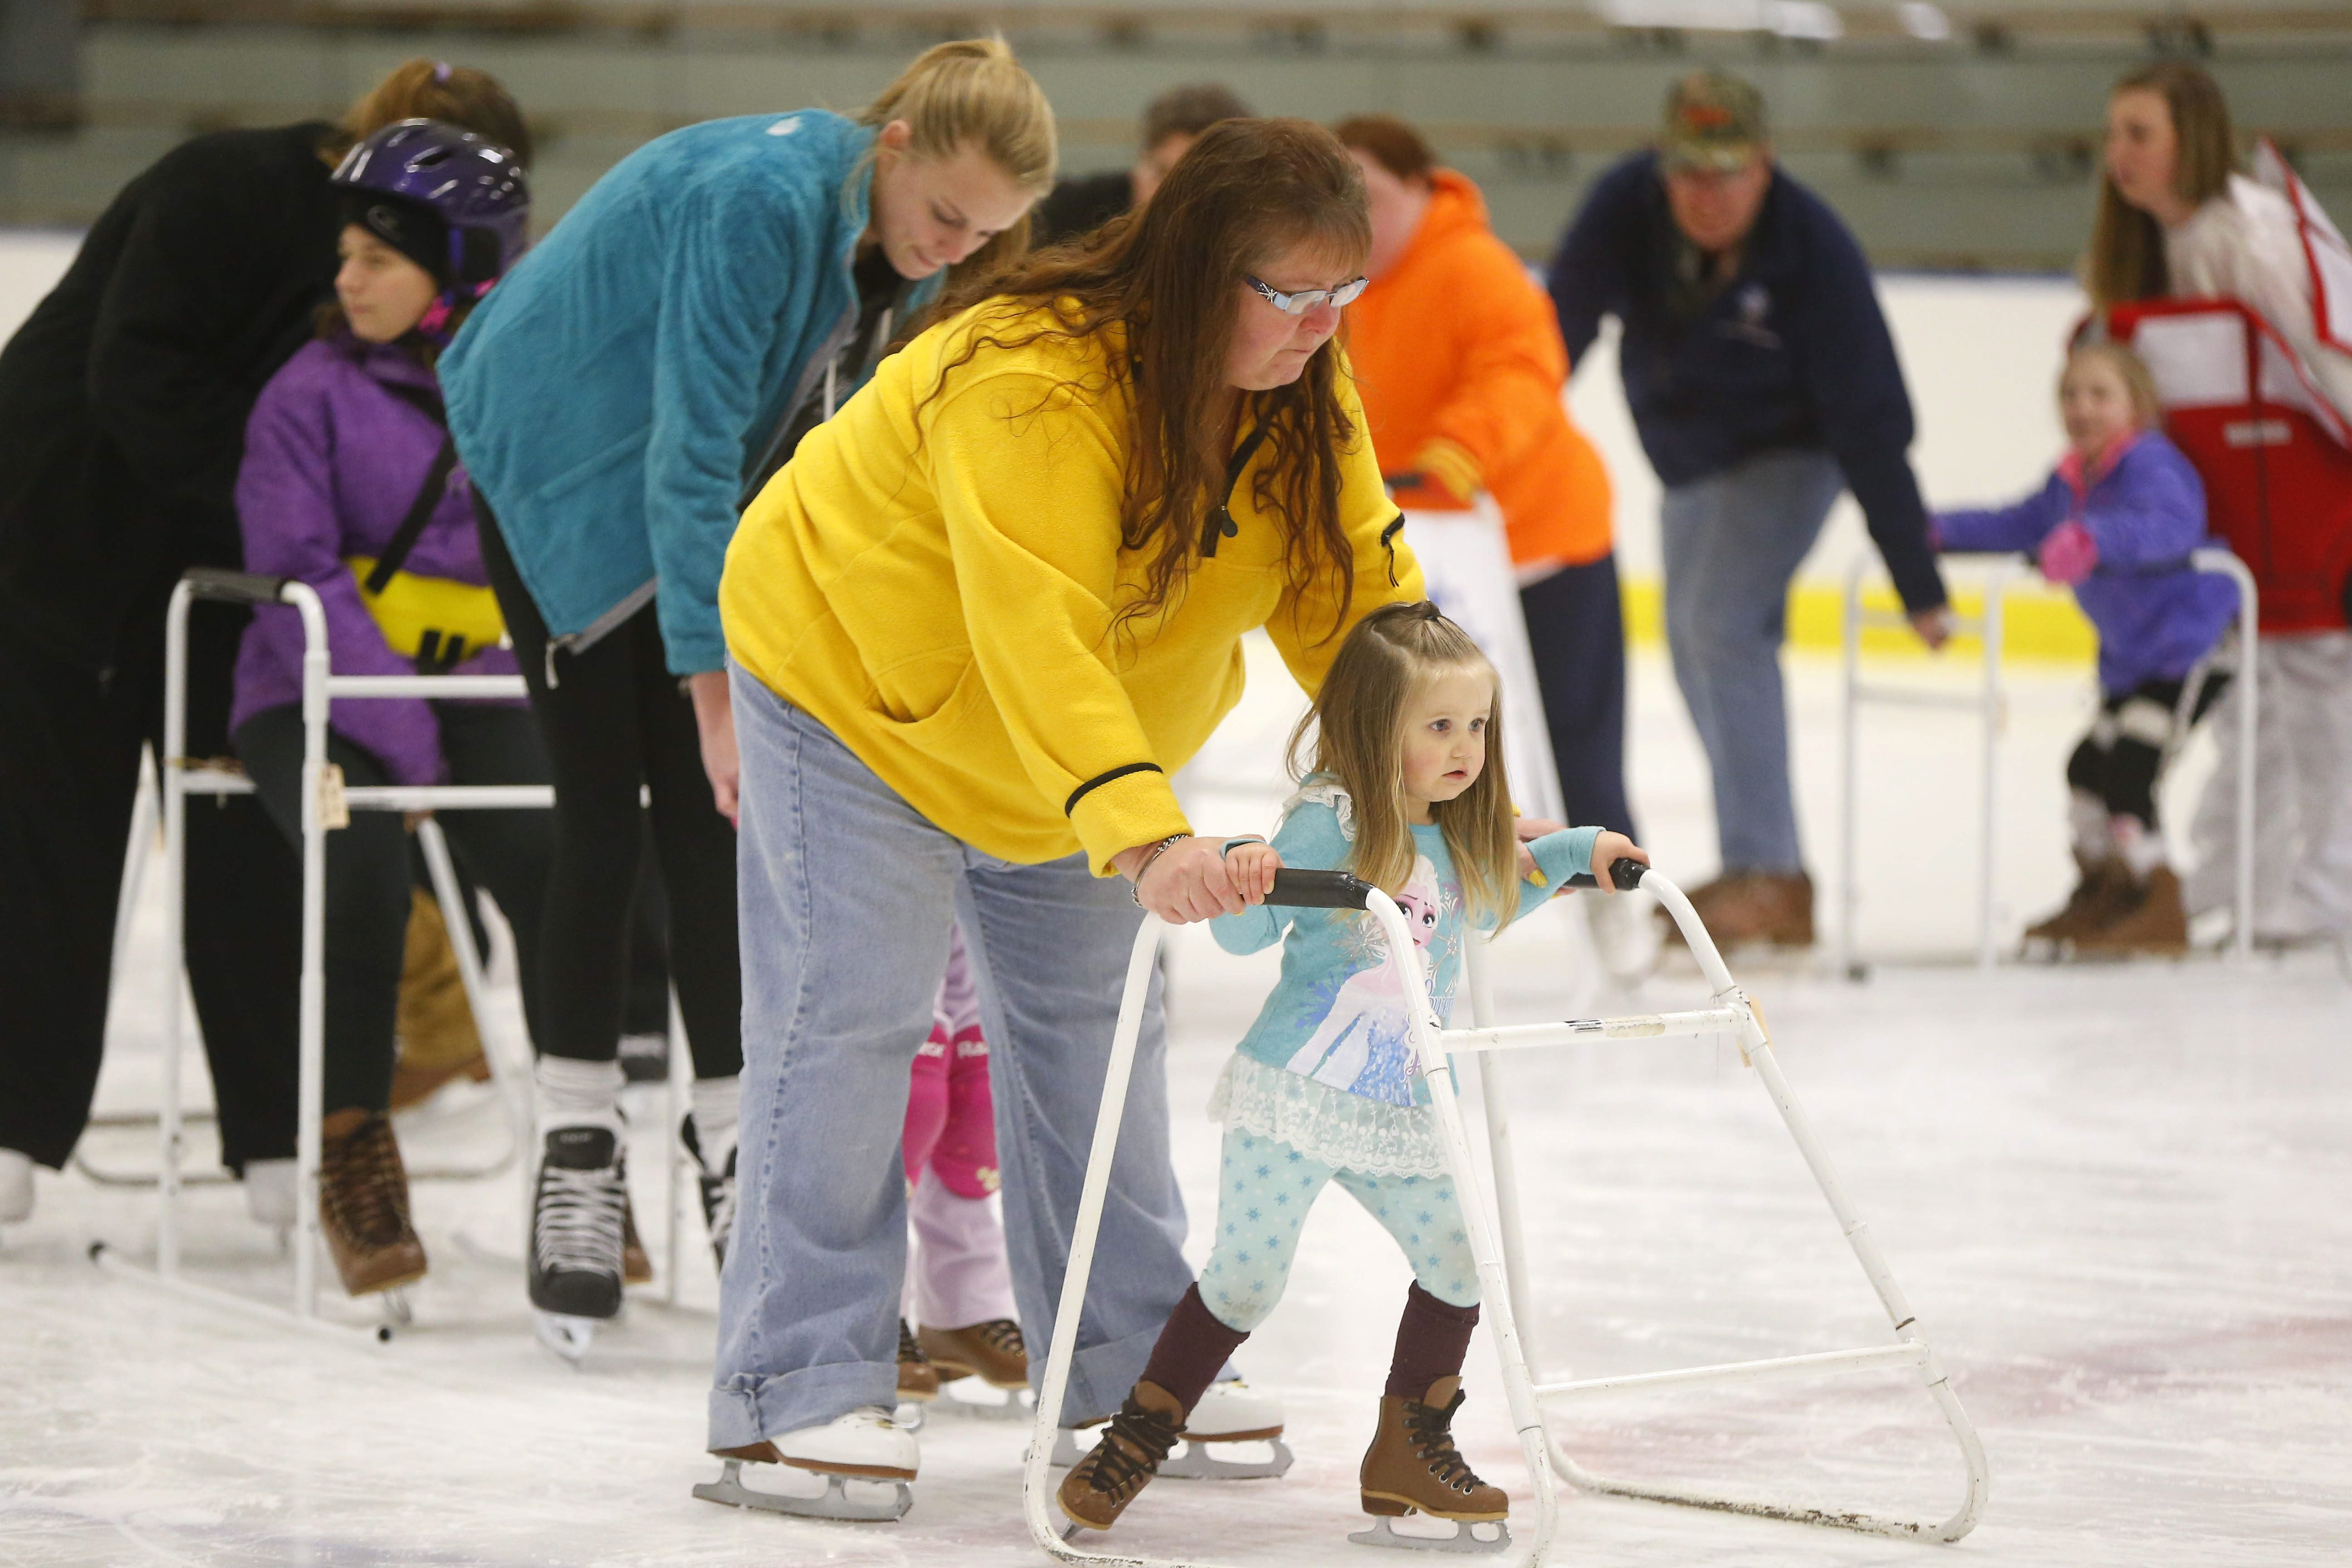 Skaters get ready for the Gliding Stars of Western New York's 12th annual ice show at the Northtown Center at Amherst.  Gliding Stars is an adaptive ice skating program for people with disabilities. The ice show takes place this weekend.